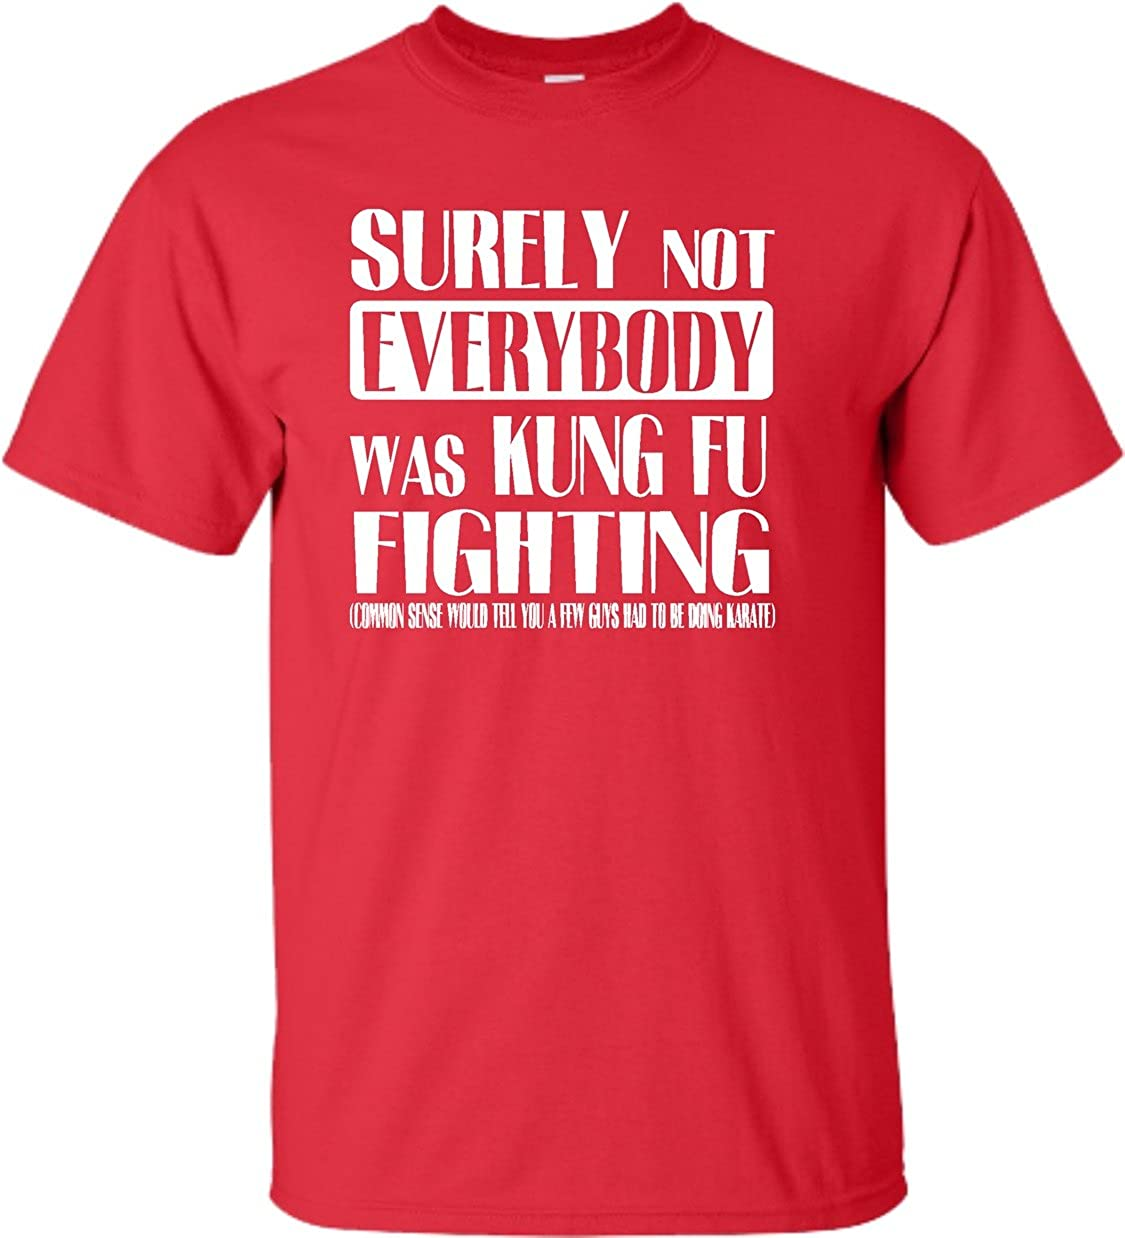 9837a9dcf Amazon.com: YL 14-16 Red Youth Surely Not Everybody was Kung Fu Fighting T- Shirt: Clothing